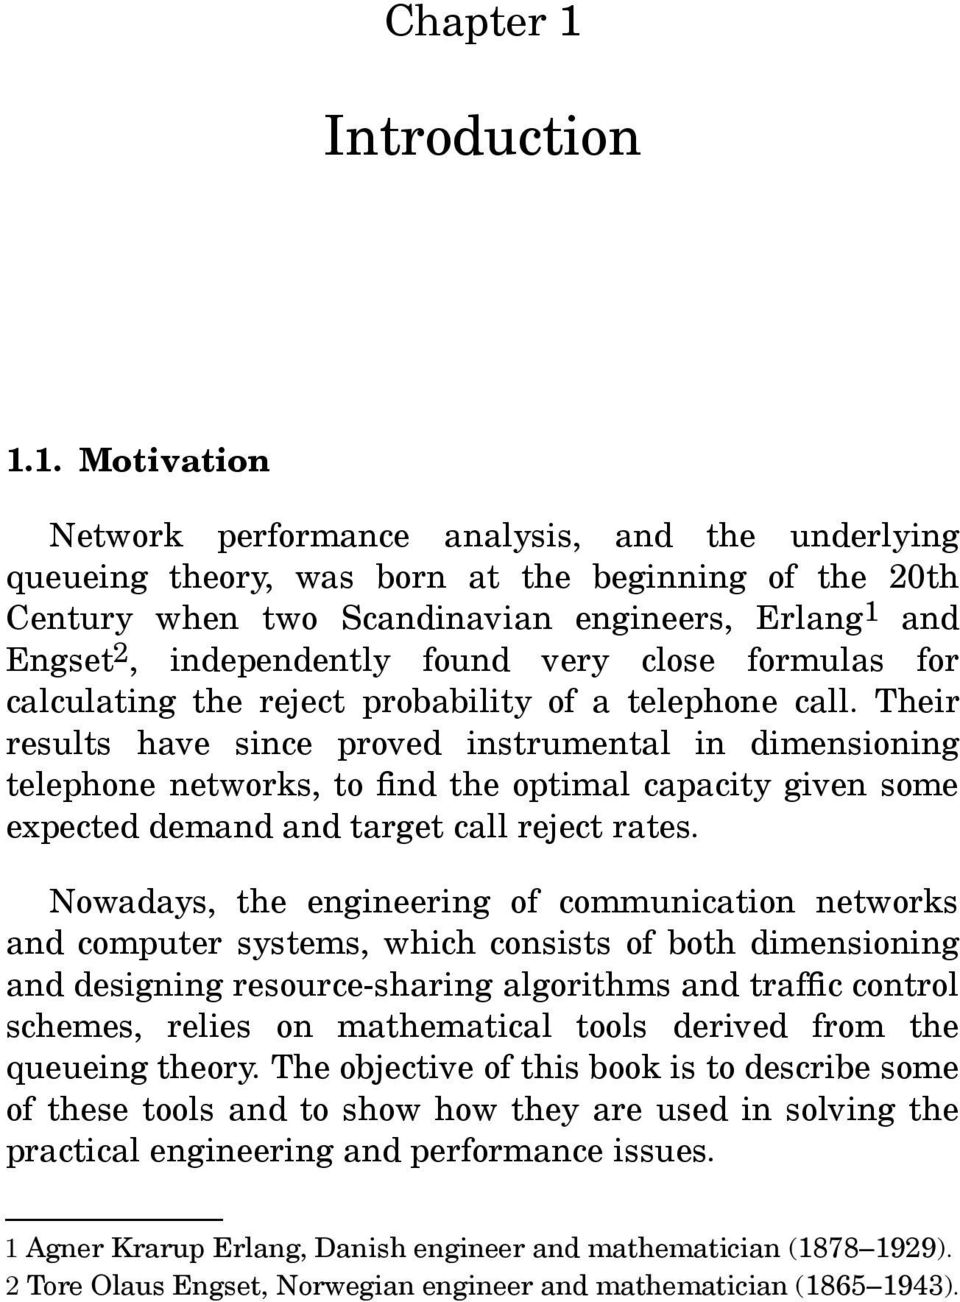 1. Motivation Network performance analysis, and the underlying queueing theory, was born at the beginning of the 20th Century when two Scandinavian engineers, Erlang 1 and Engset 2, independently